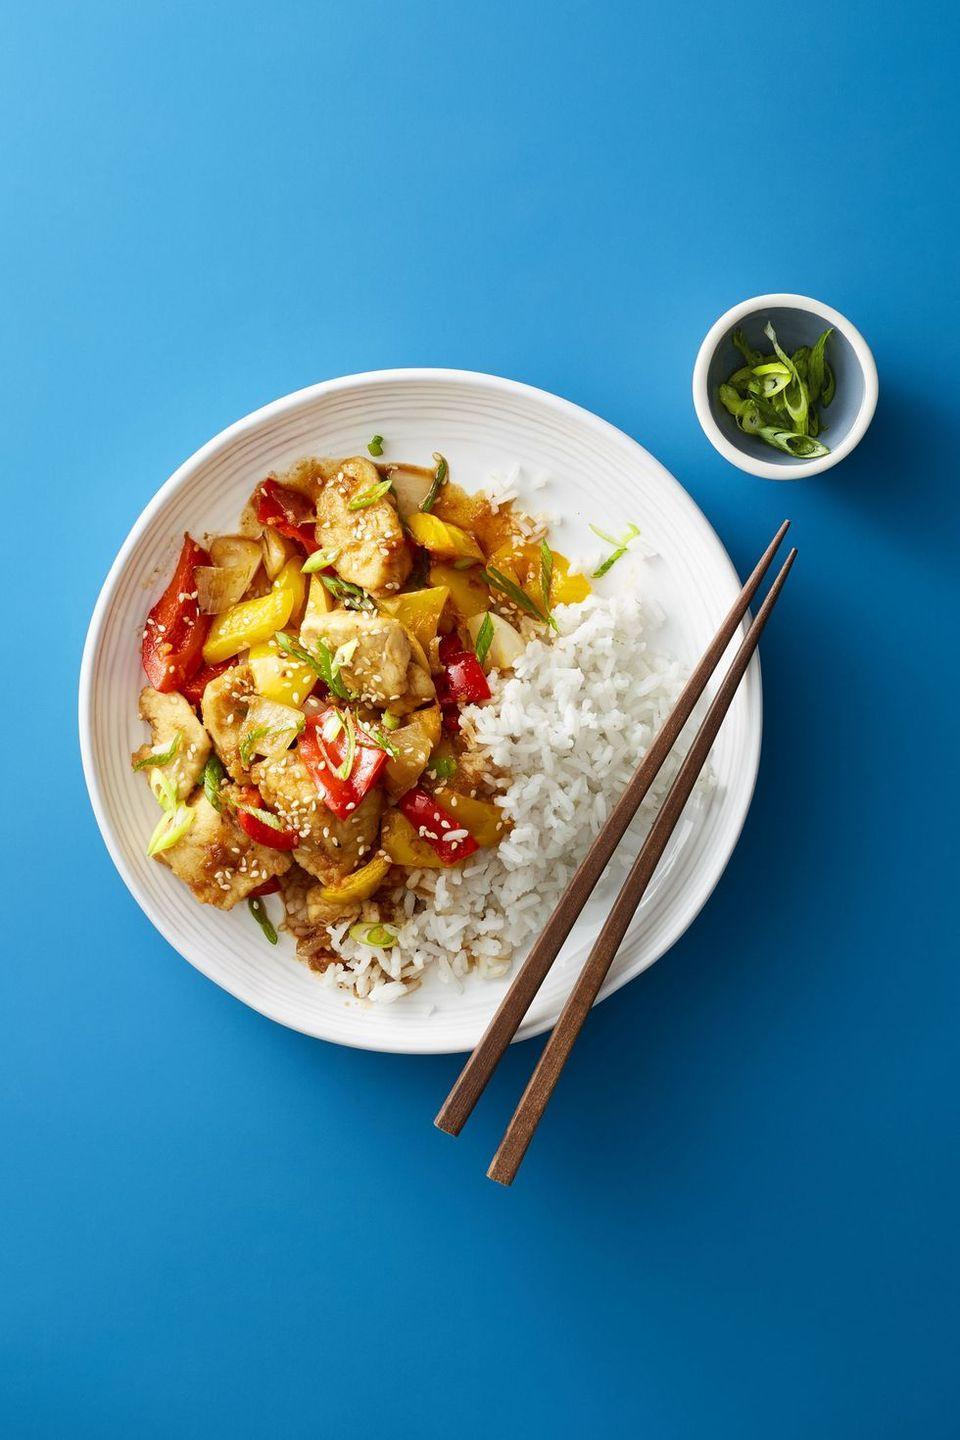 "<p>Take our word for it: You're going to want to eat this Sriracha honey sauce on <em>everything</em>.</p><p><em><a href=""https://www.goodhousekeeping.com/food-recipes/easy/a47684/sesame-chicken-stir-fry-recipe/"" rel=""nofollow noopener"" target=""_blank"" data-ylk=""slk:Get the recipe for Sesame Chicken Stir-Fry »"" class=""link rapid-noclick-resp"">Get the recipe for Sesame Chicken Stir-Fry »</a></em></p>"